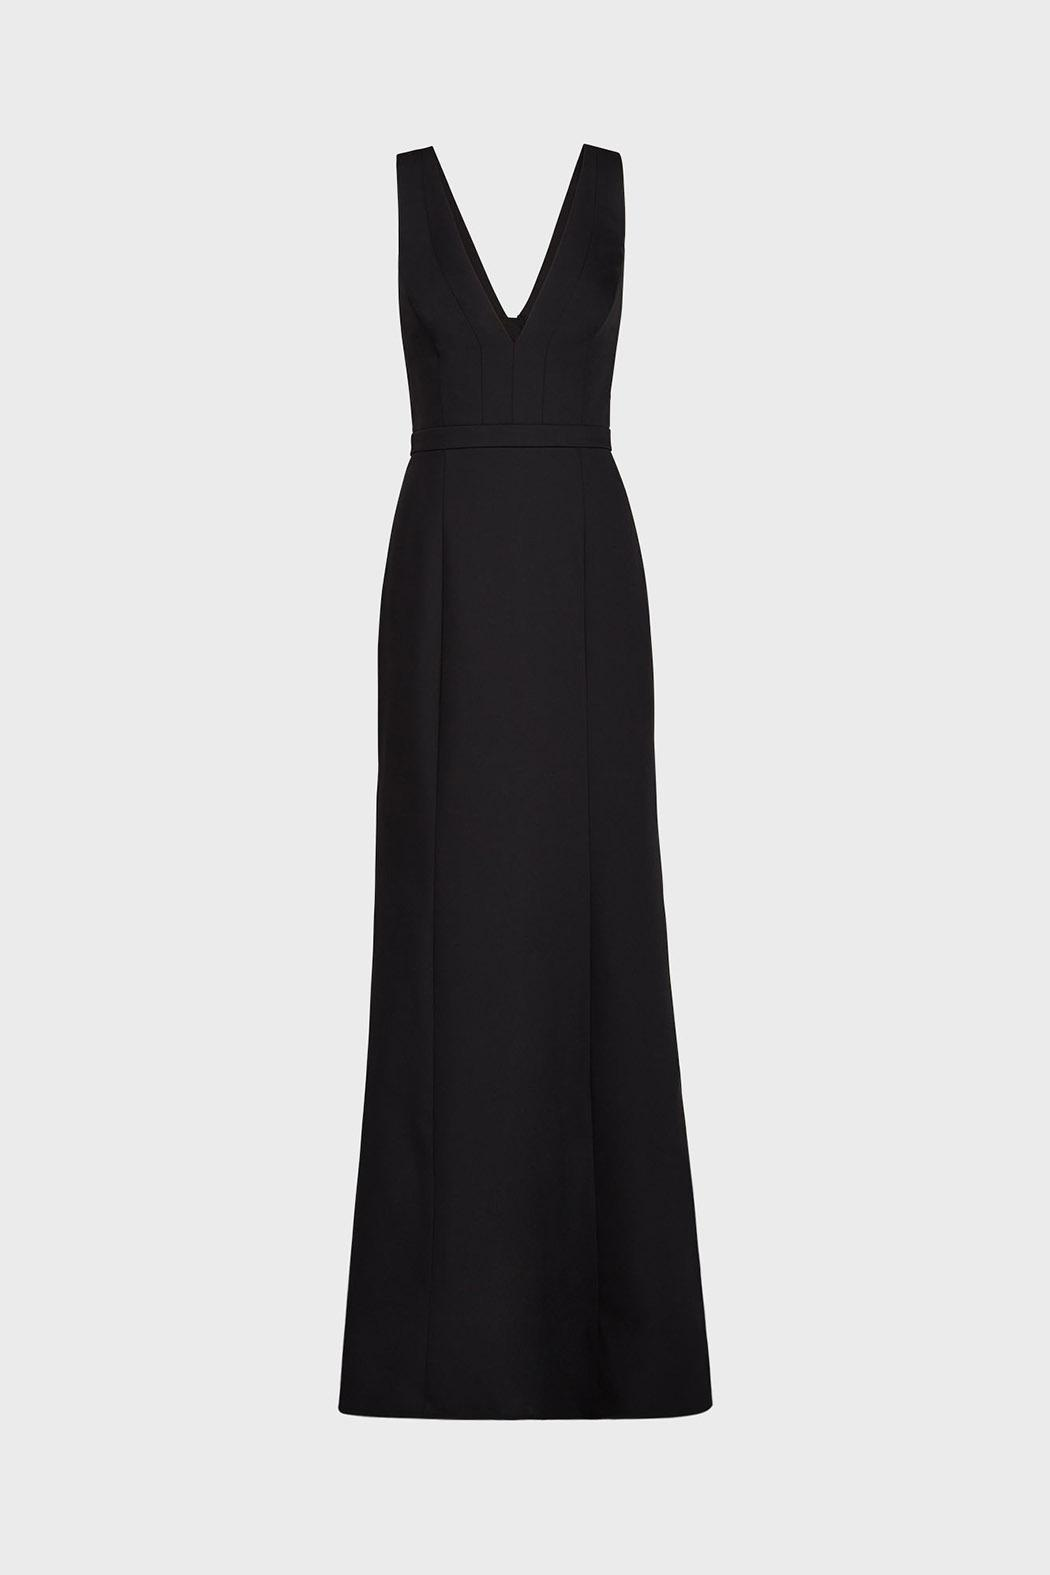 BCBG Max Azria Riva Black Gown from Dallas by Pax & Parker — Shoptiques